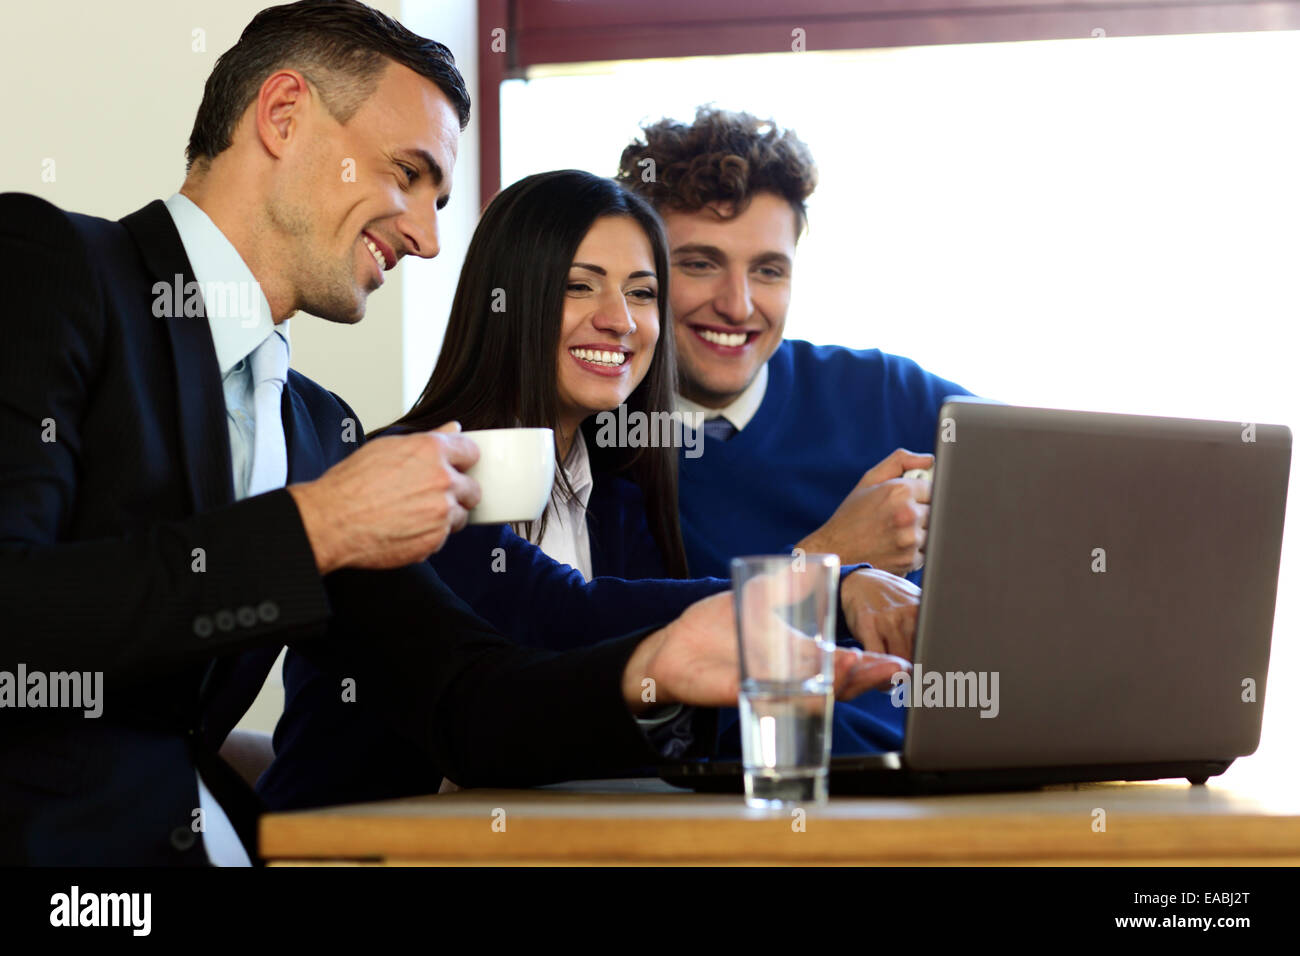 Business people using laptop together in office - Stock Image